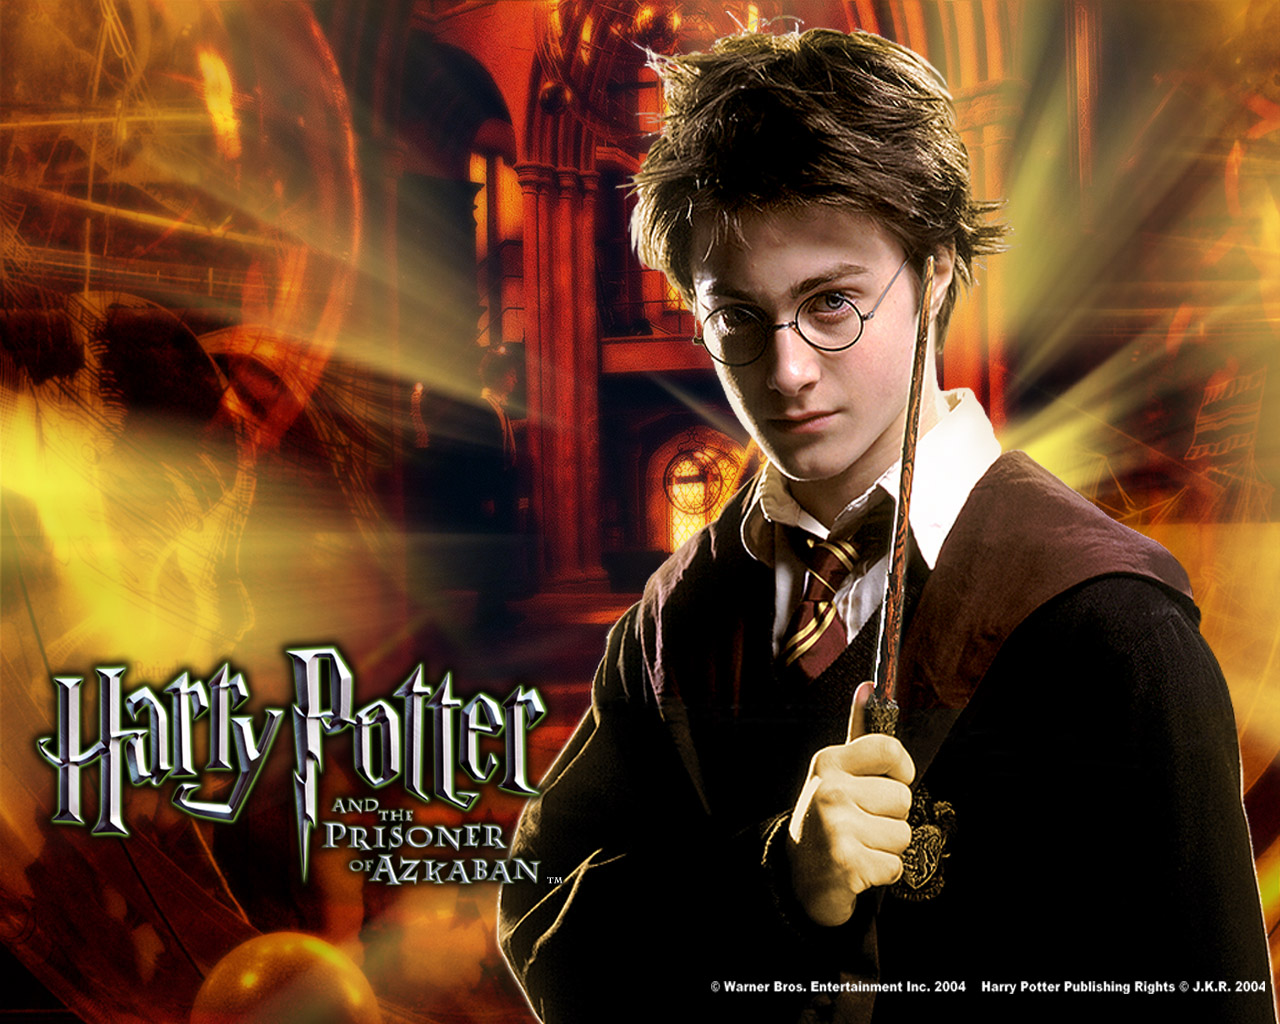 http://3.bp.blogspot.com/-YJHSeeDtFUc/UQjXVK88PAI/AAAAAAAABnA/Ak5jsgCLnLI/s1600/harry-potter-and-the-prisoner-of-azkaban-poster-3.jpg